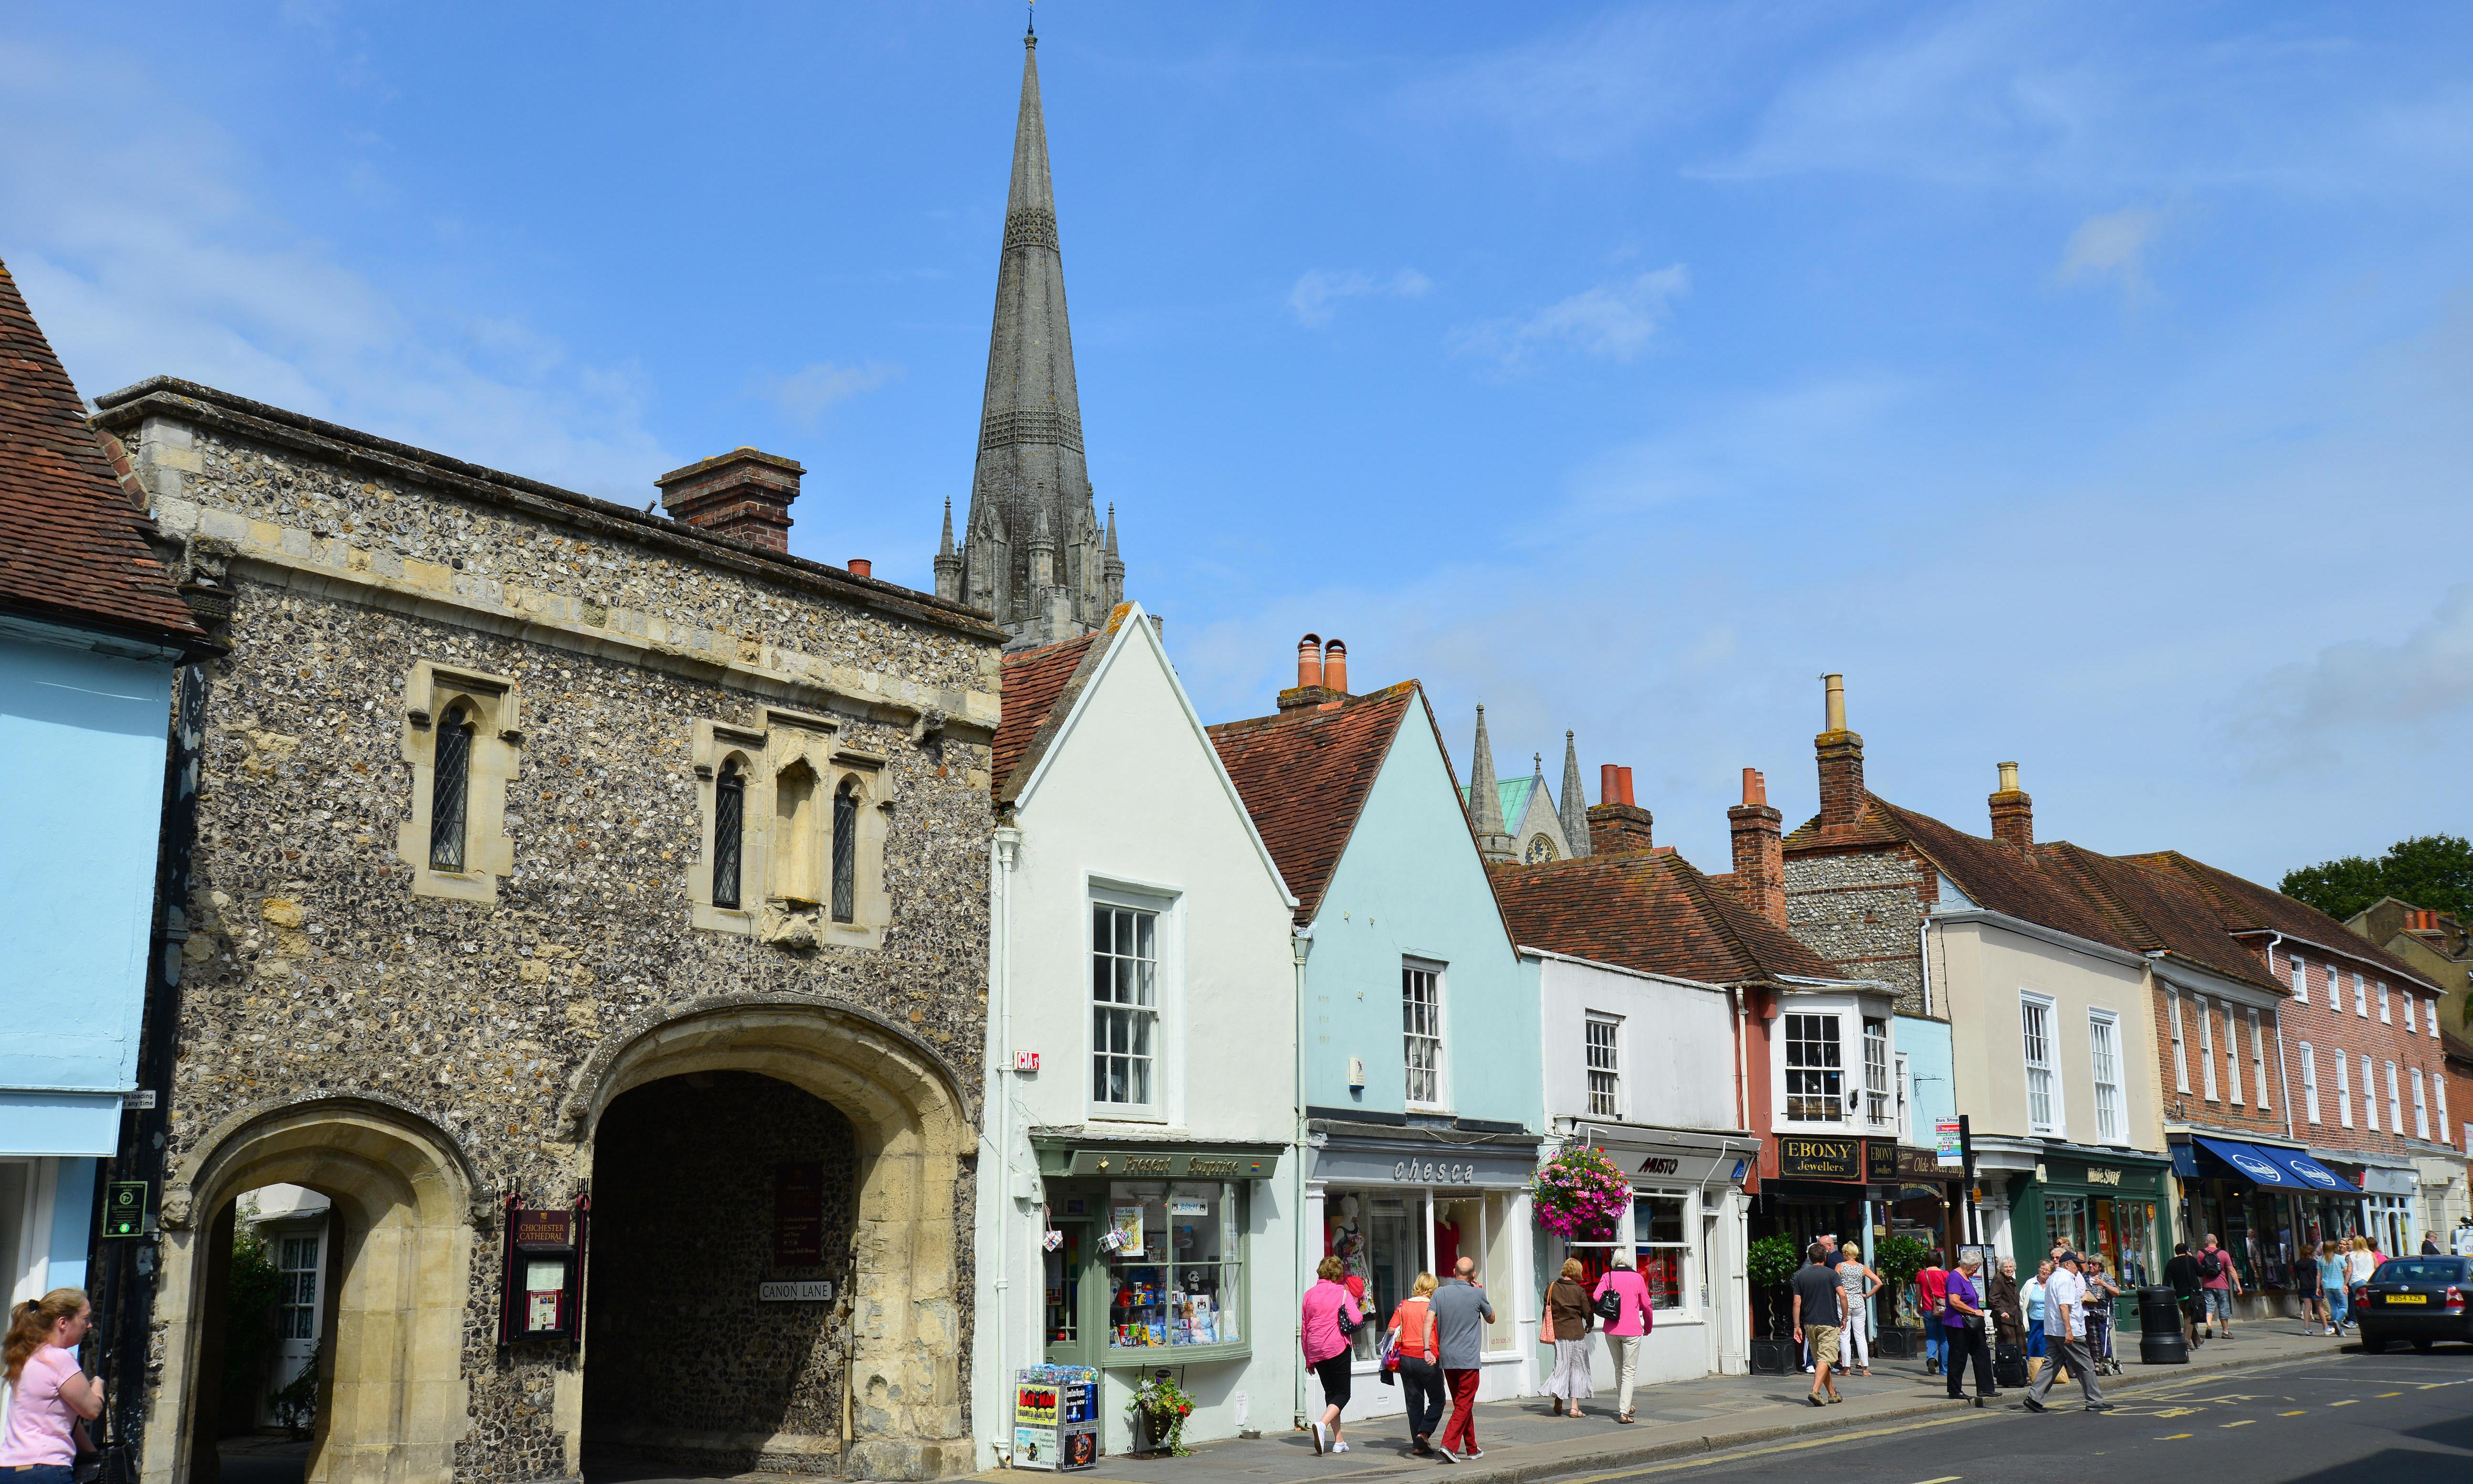 Let's move to Chichester, West Sussex: it punches well above its weight